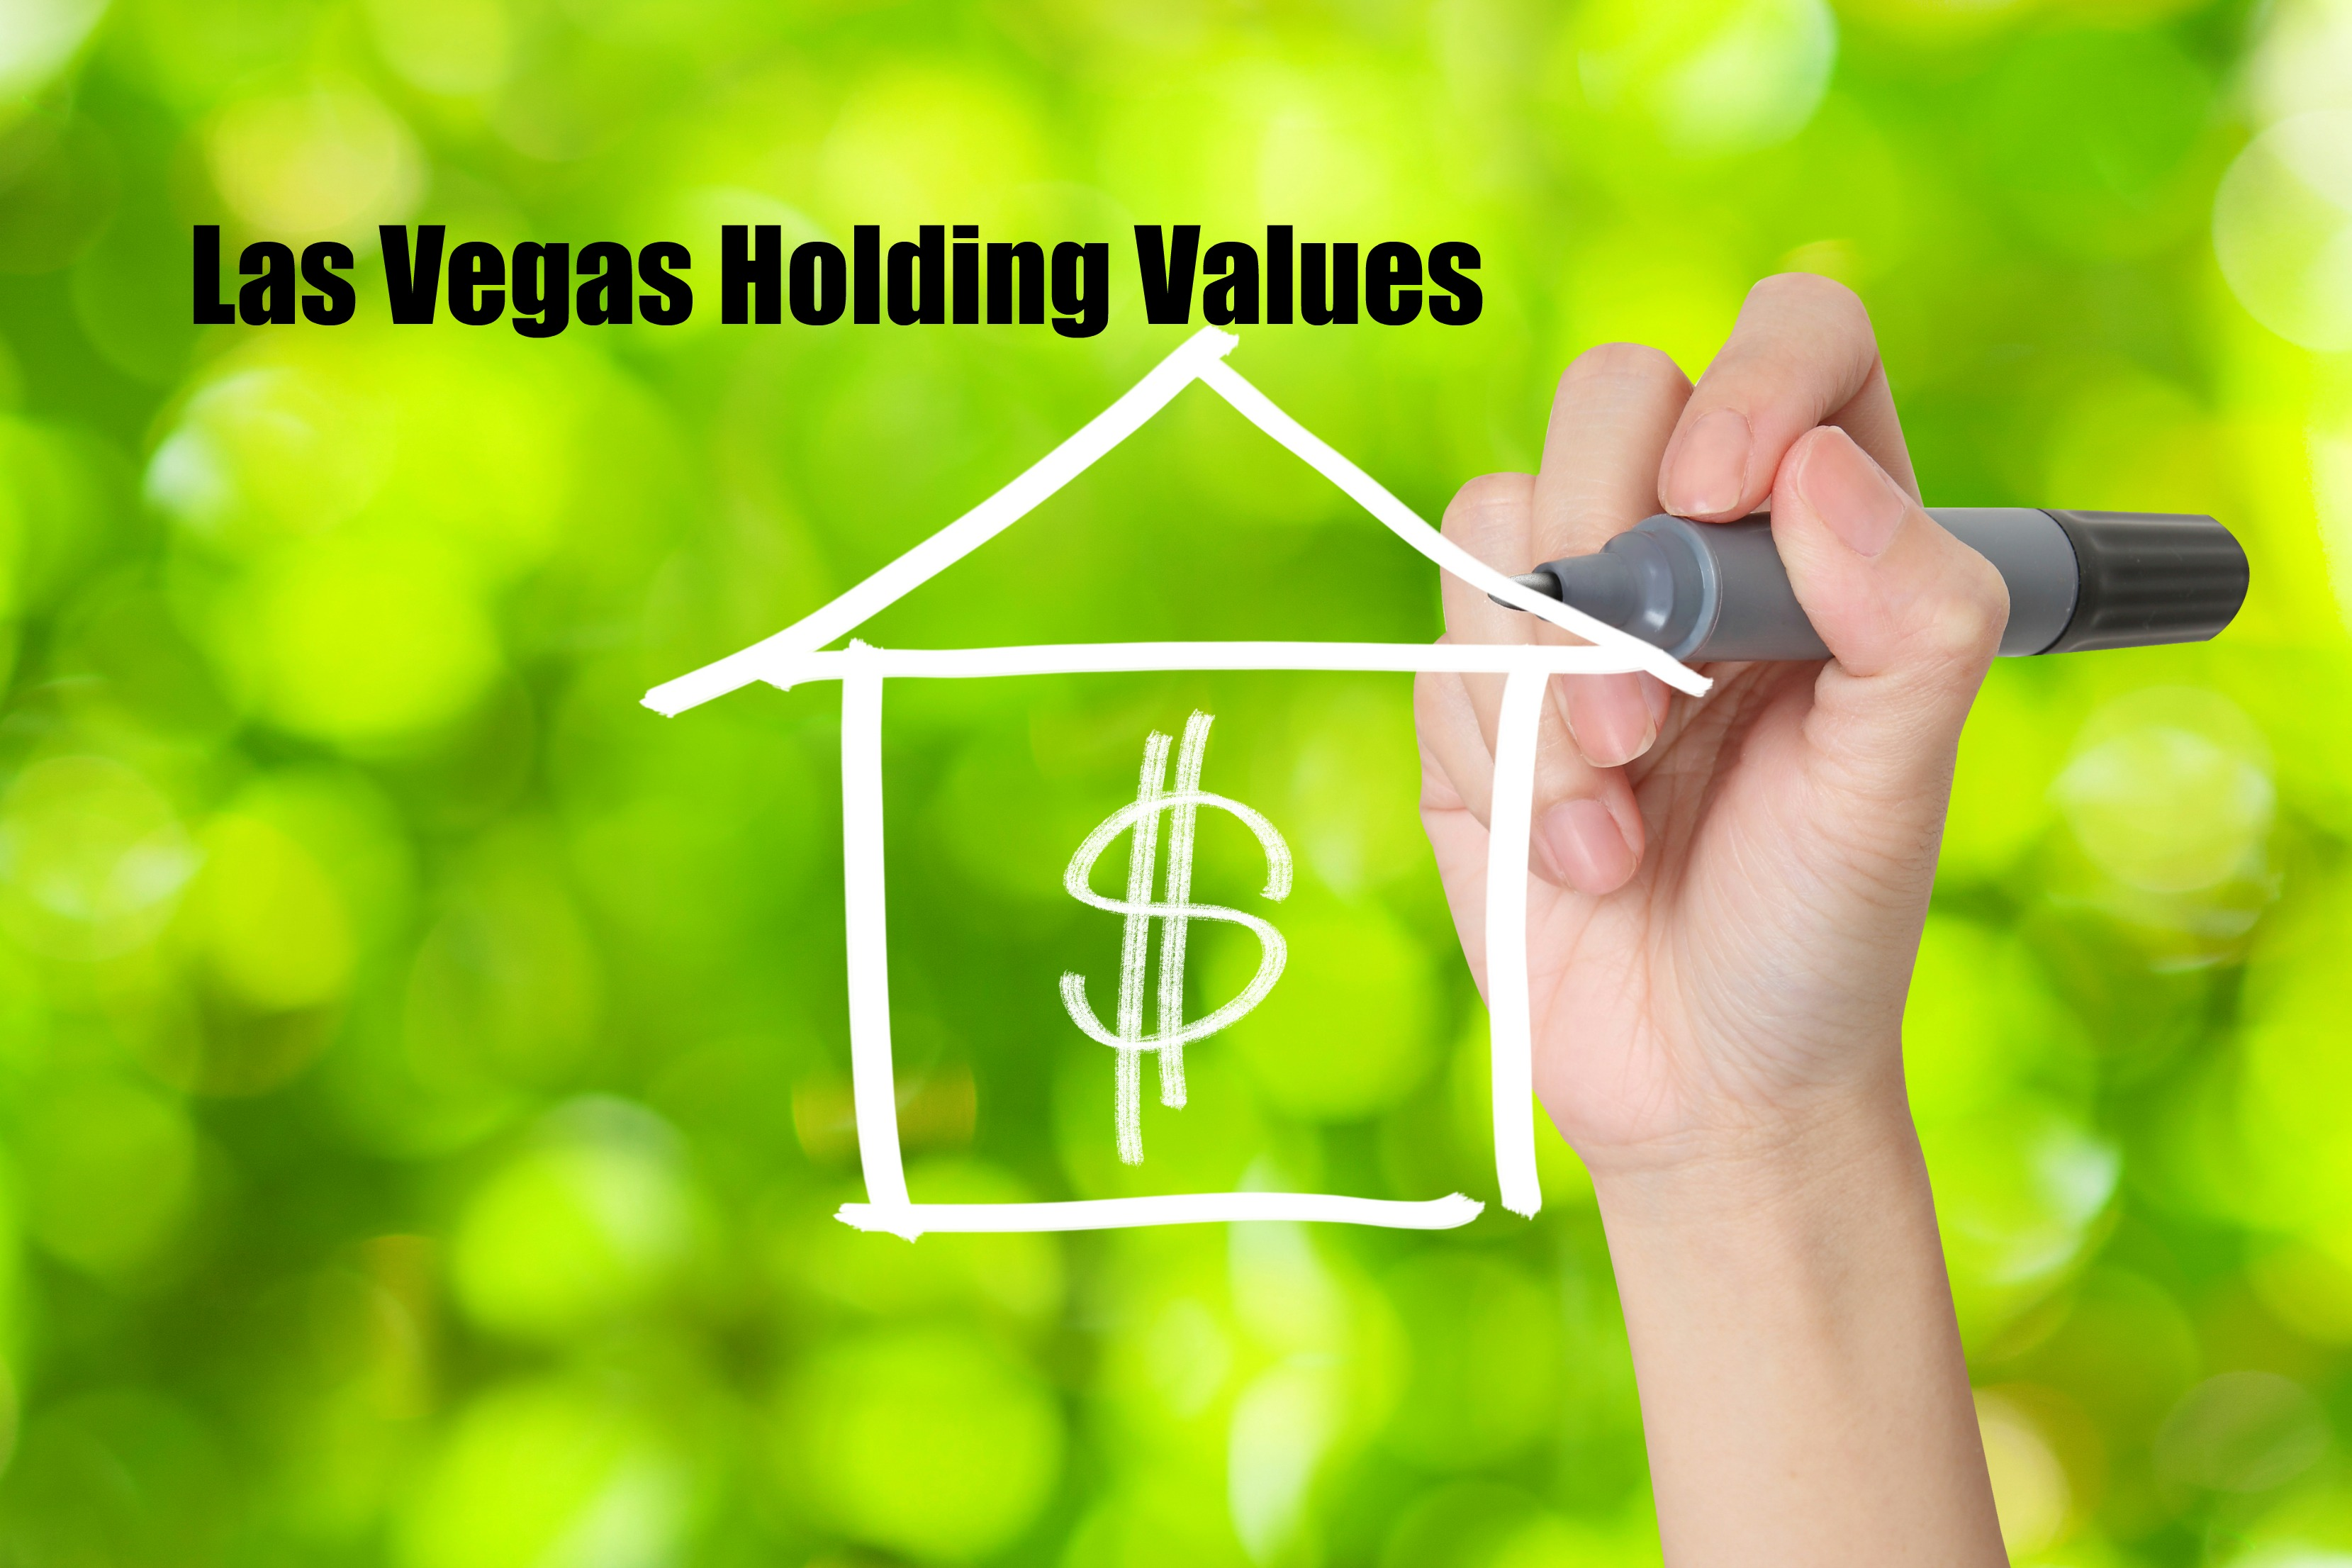 Las Vegas Holding Values